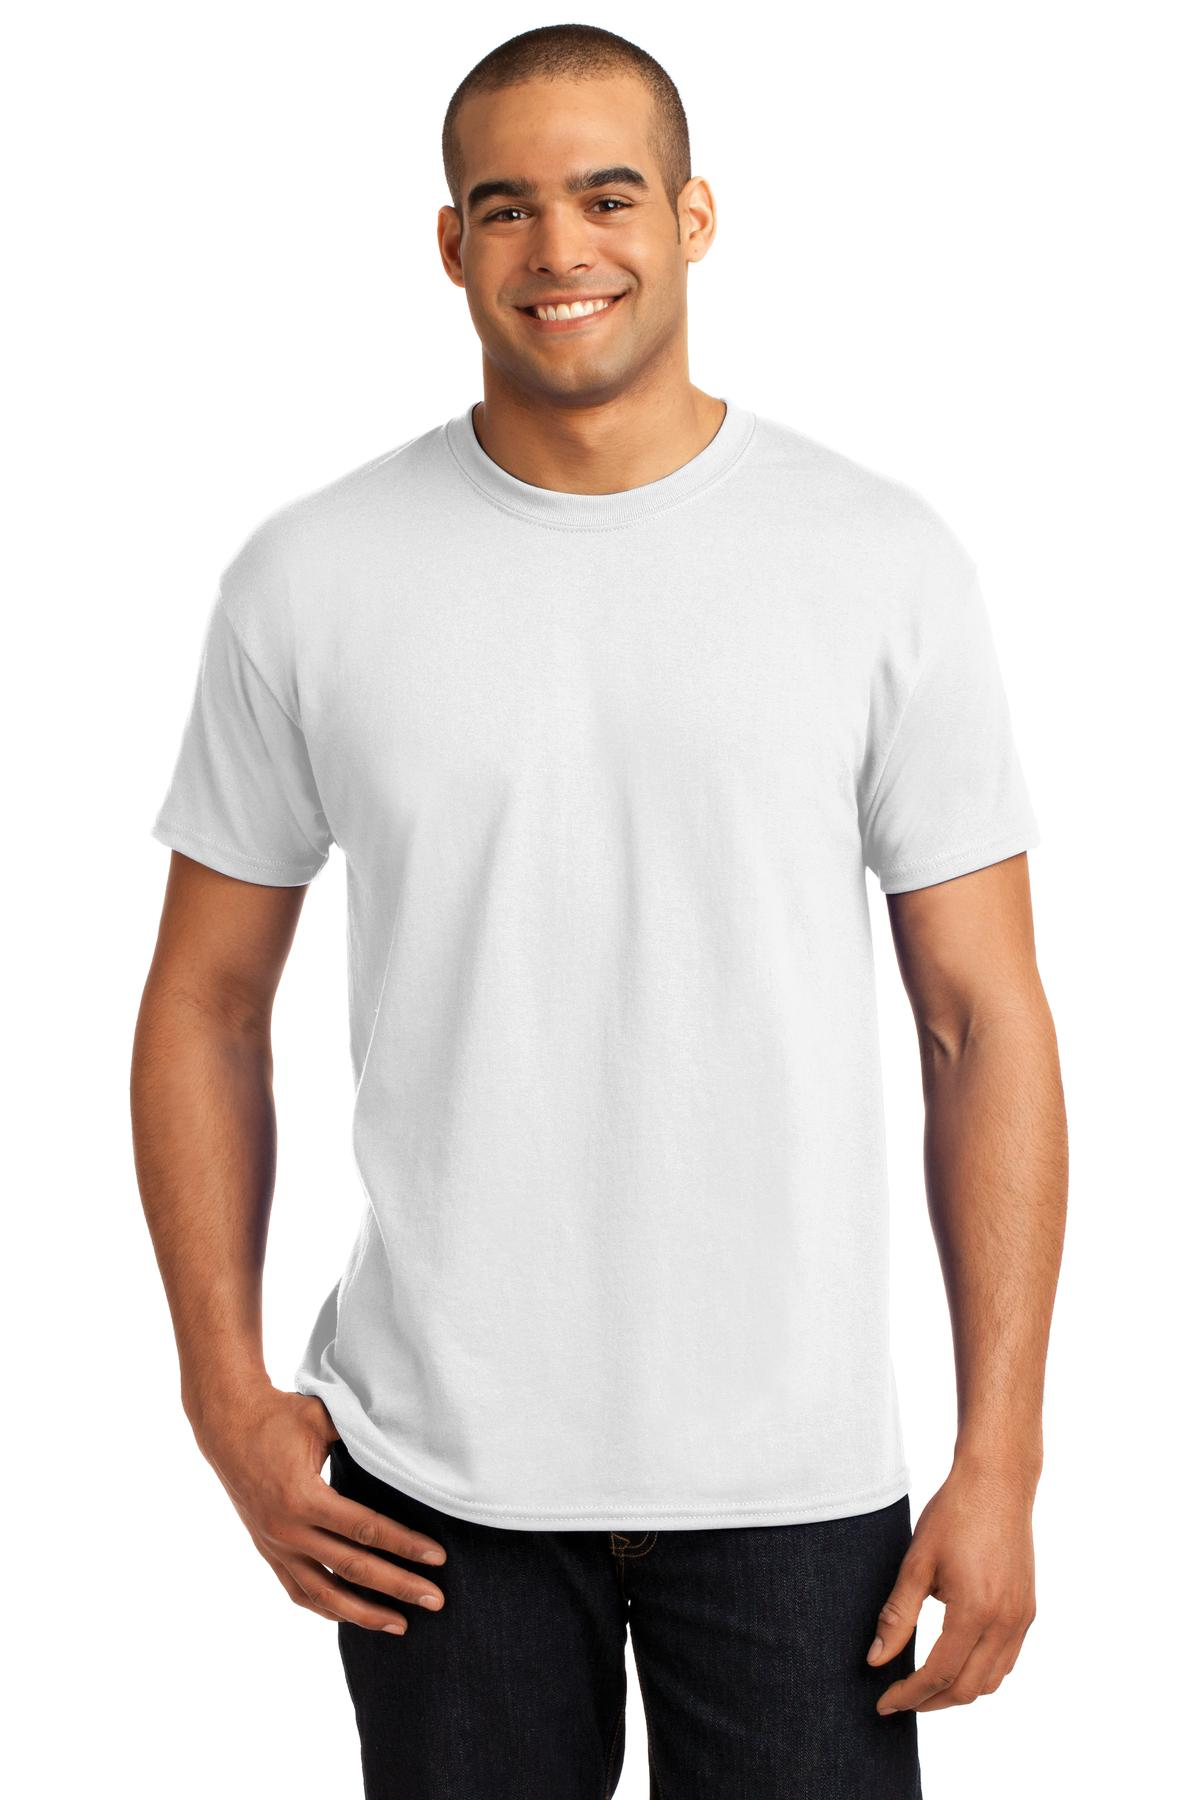 Hanes ®  - EcoSmart ®  50/50 Cotton/Poly T-Shirt.  5170 - White